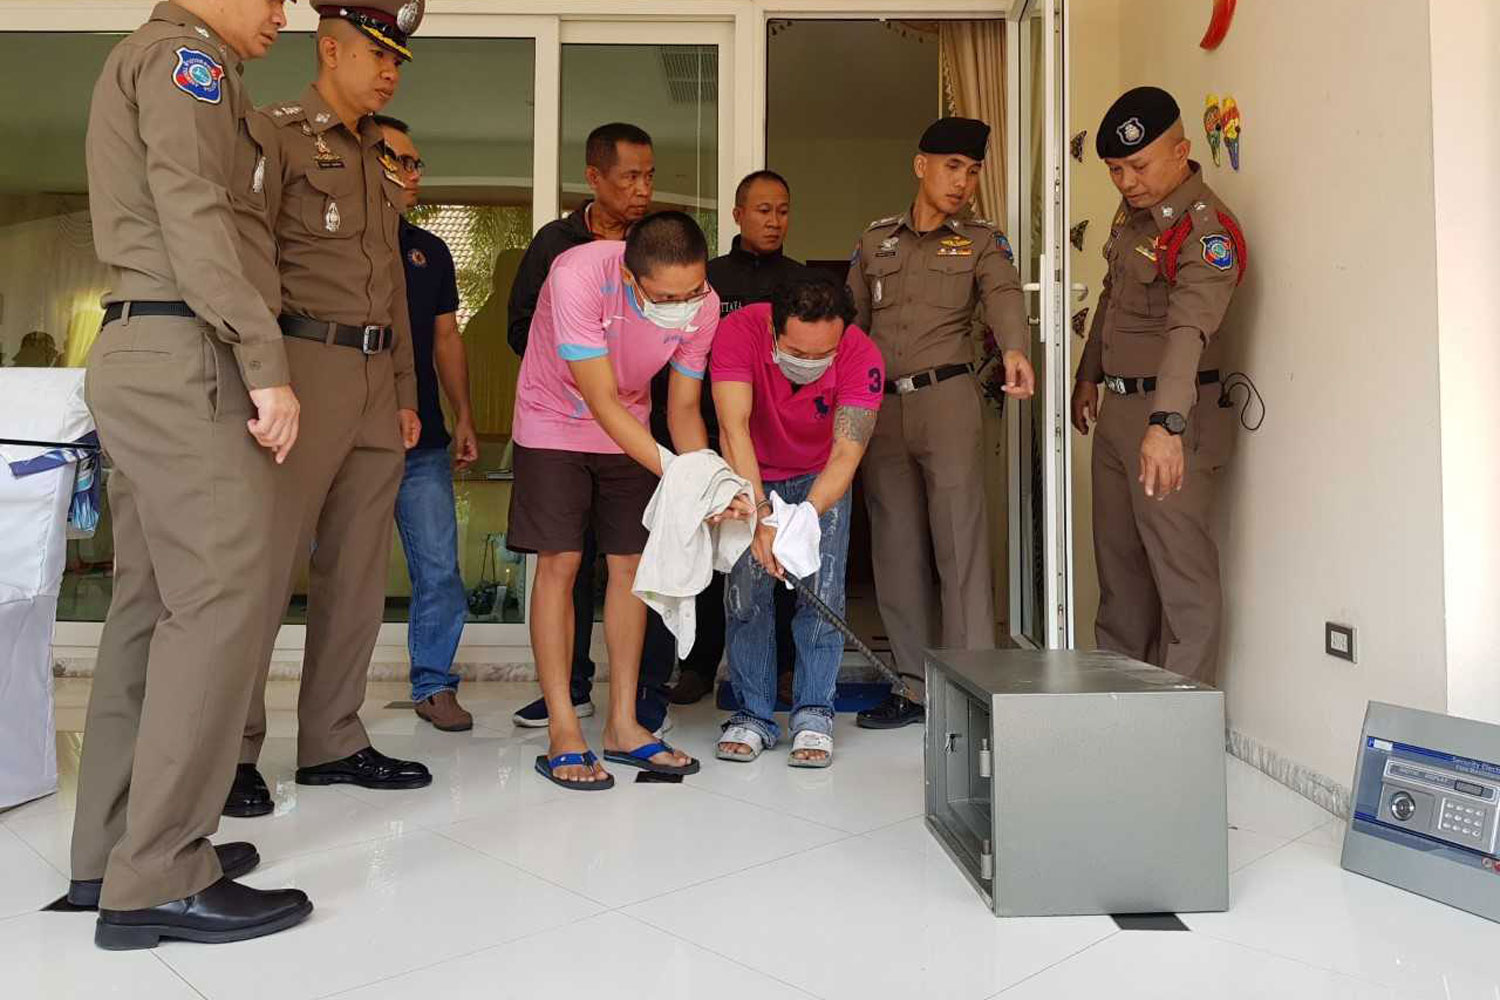 Police have the two suspected burglars re-enact their crime at the house of an Irishman in Pattaya City on Wednesday. (Photo by Chaiyot Pupattanapong)